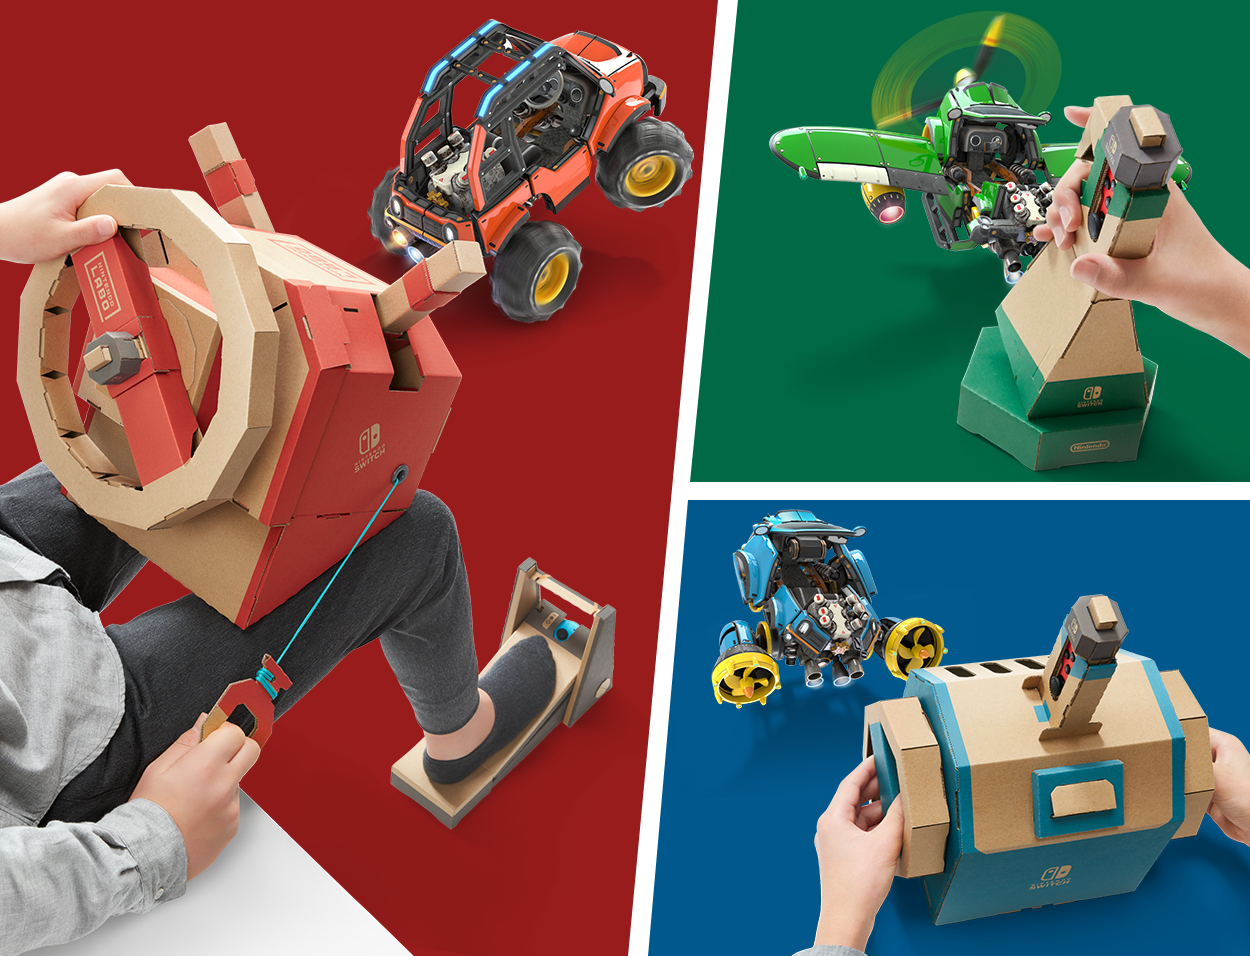 Novo kit da Nintendo Labo – Vehicle Kit